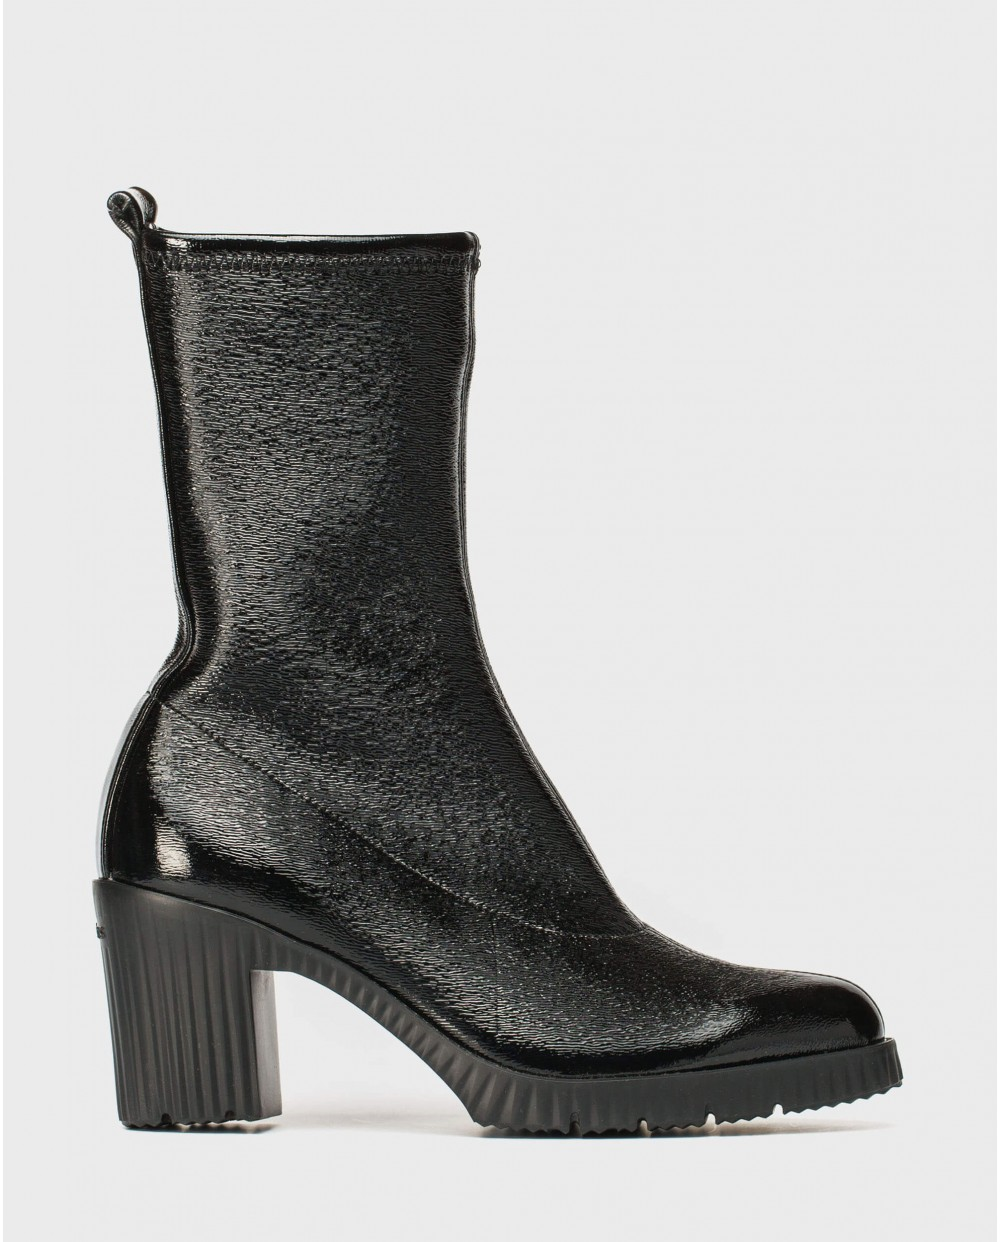 Wonders-Ankle Boots-Patent leather elastic ankle boot